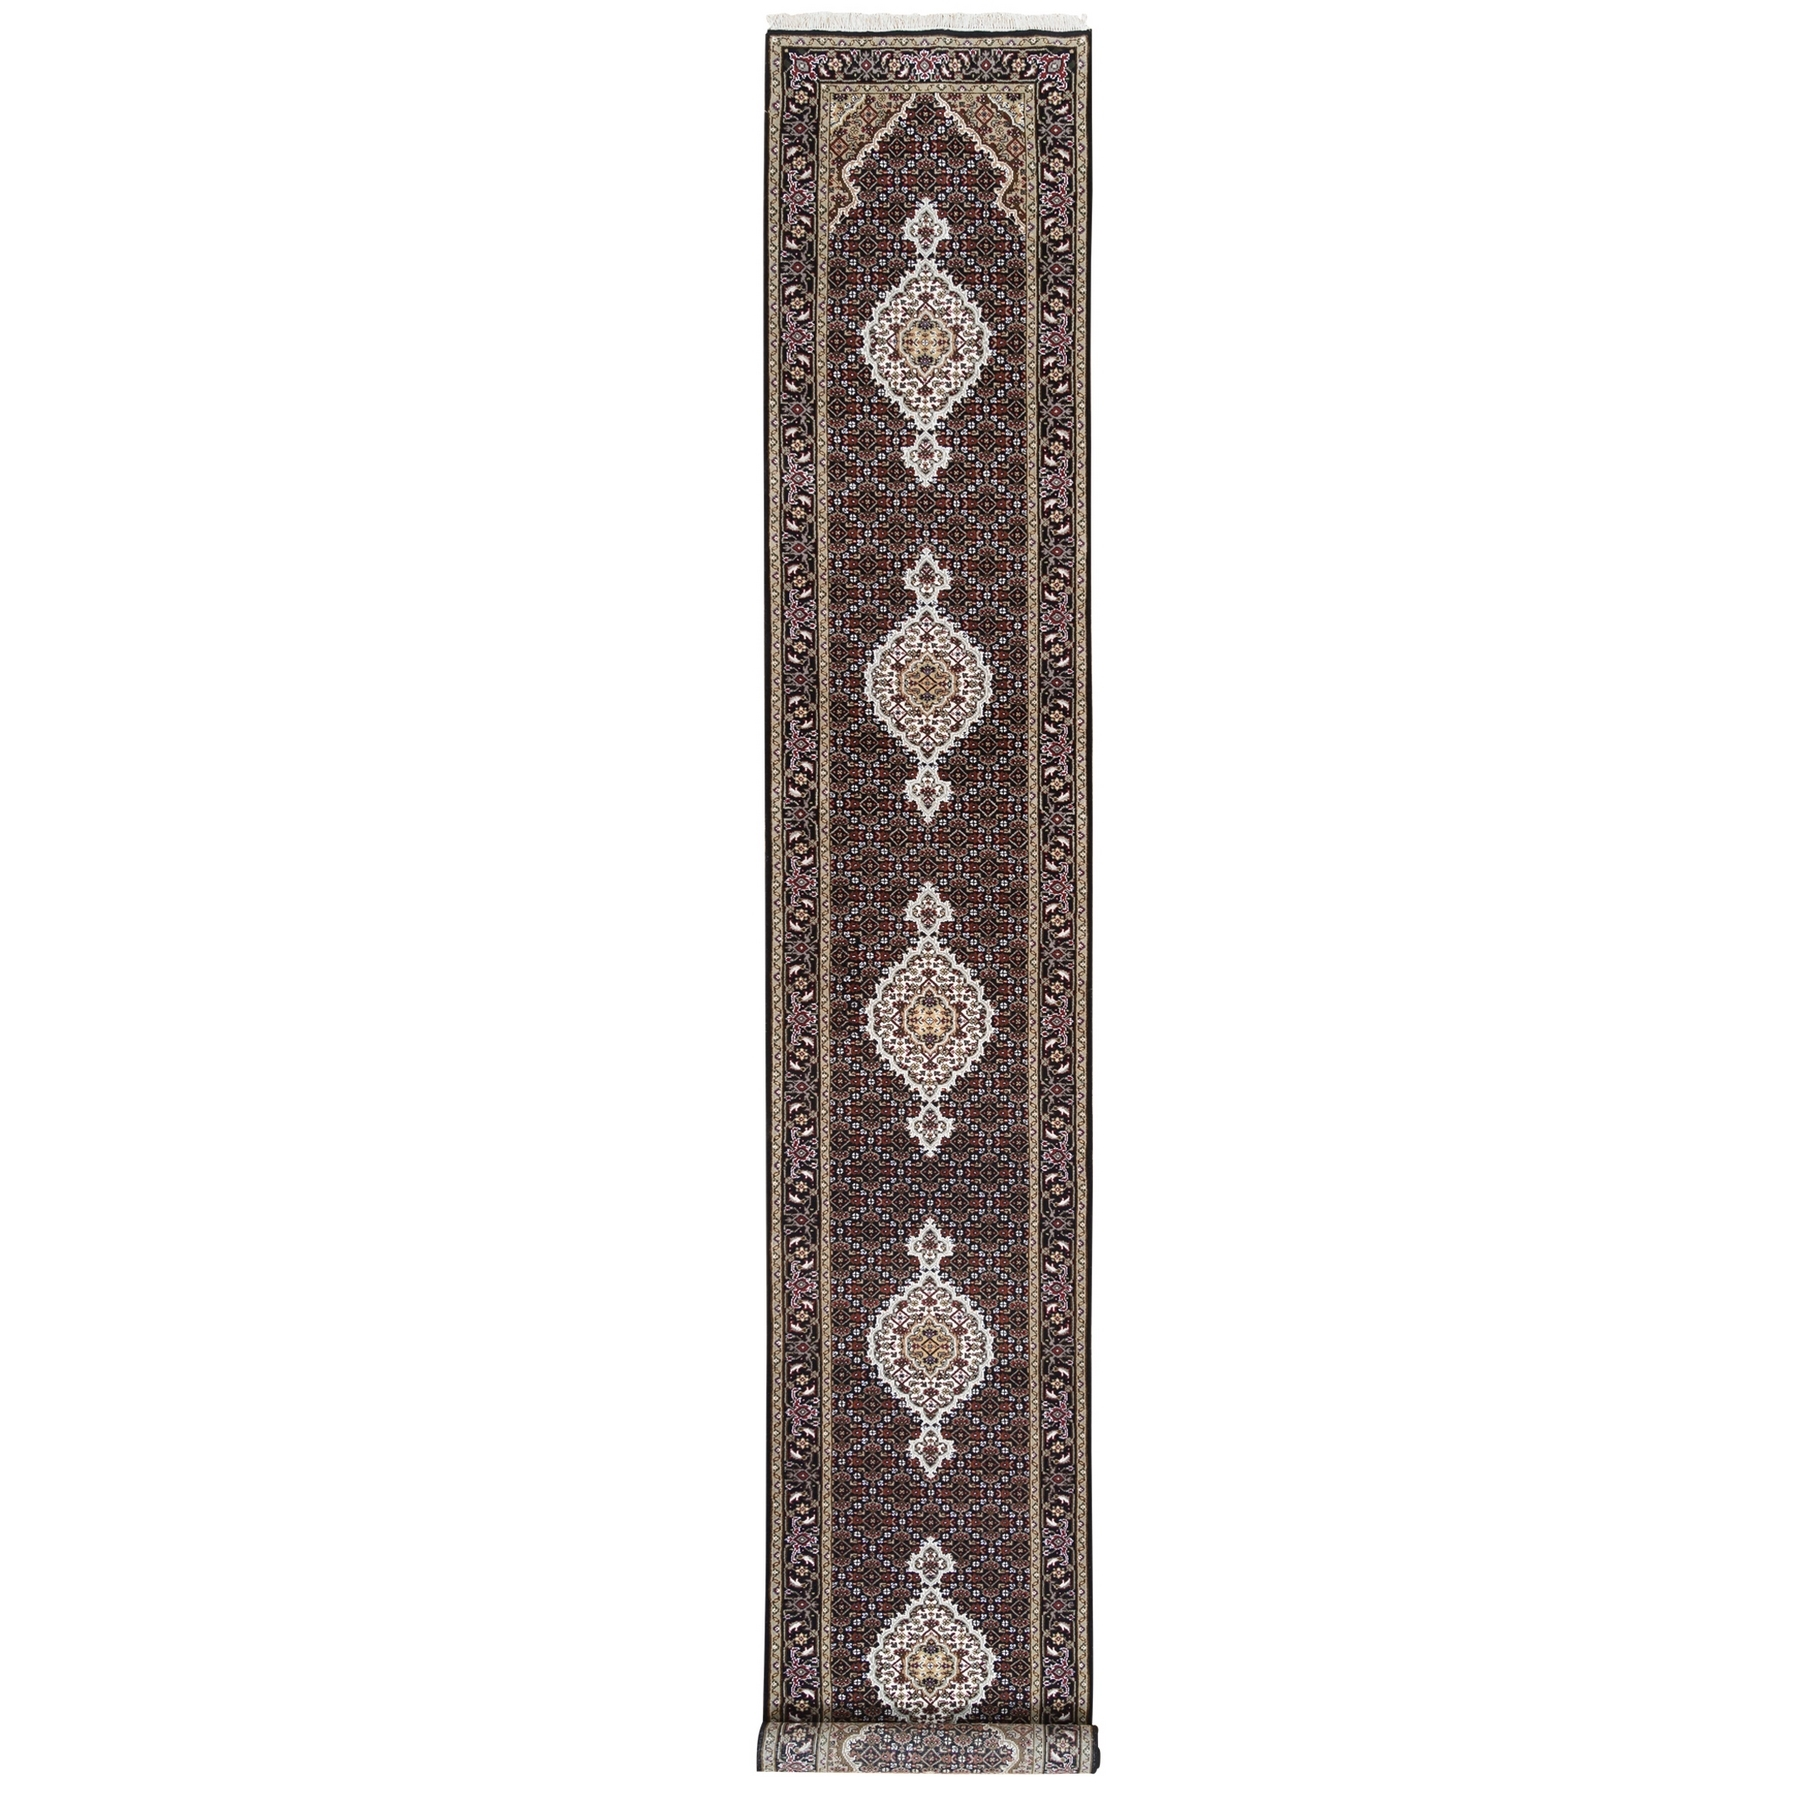 Pirniakan Collection Hand Knotted Black Rug No: 1125034